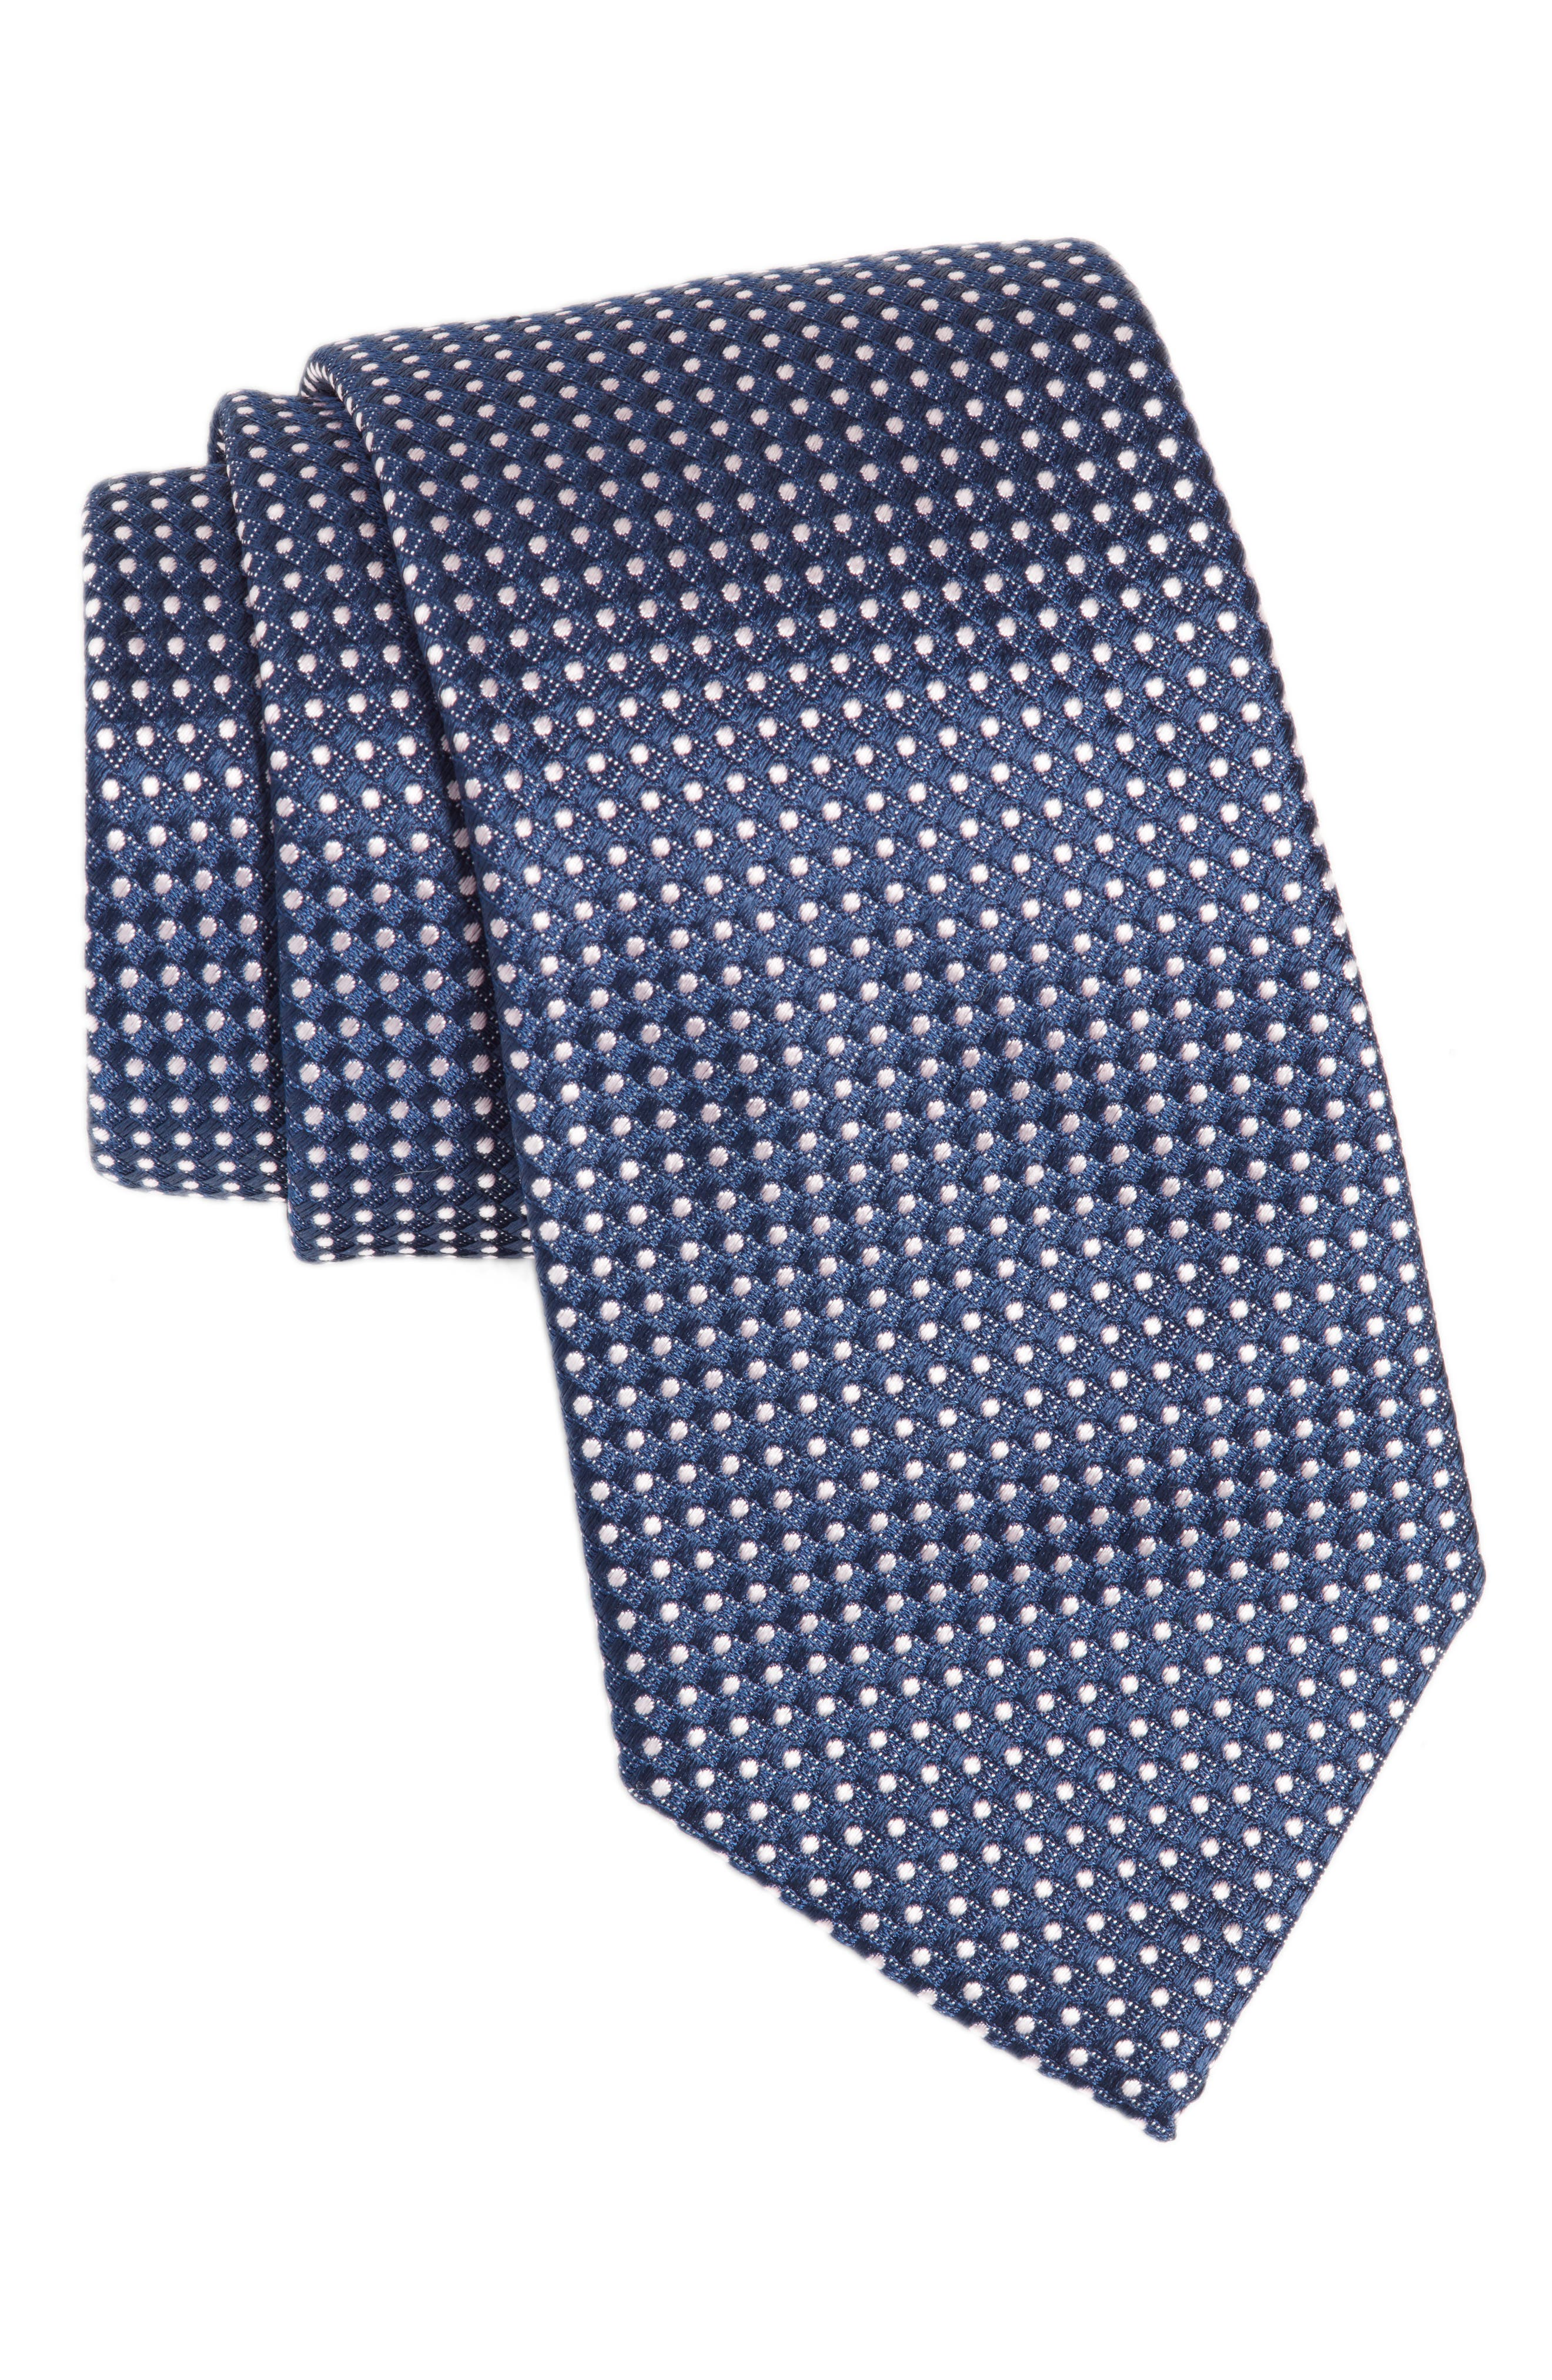 Alternate Image 1 Selected - BOSS Dot Silk Tie